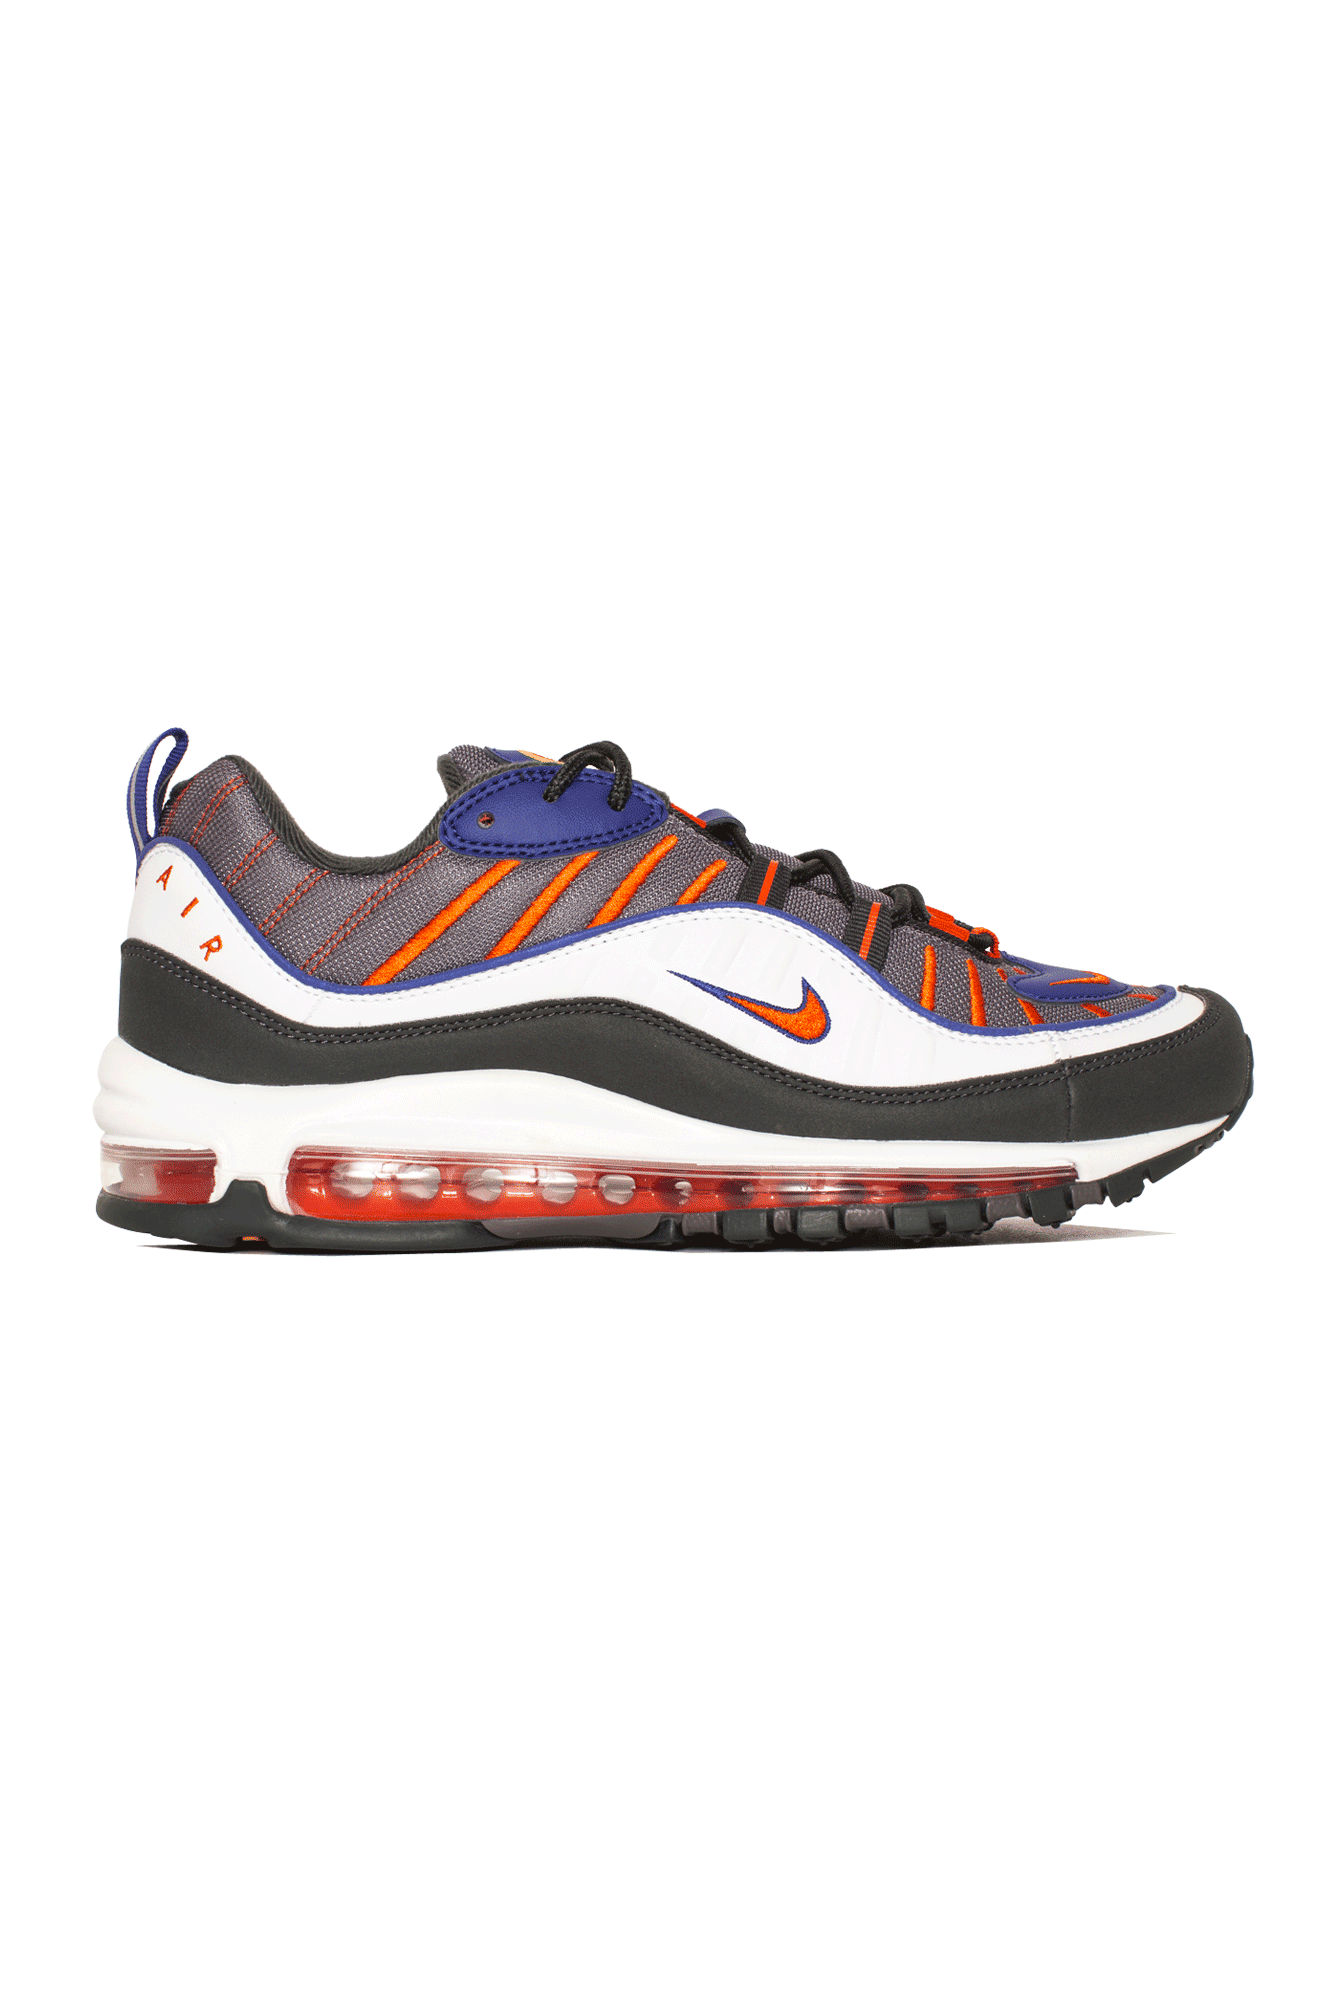 Sneakers Nike Air Max 98 Grey - One Block Down